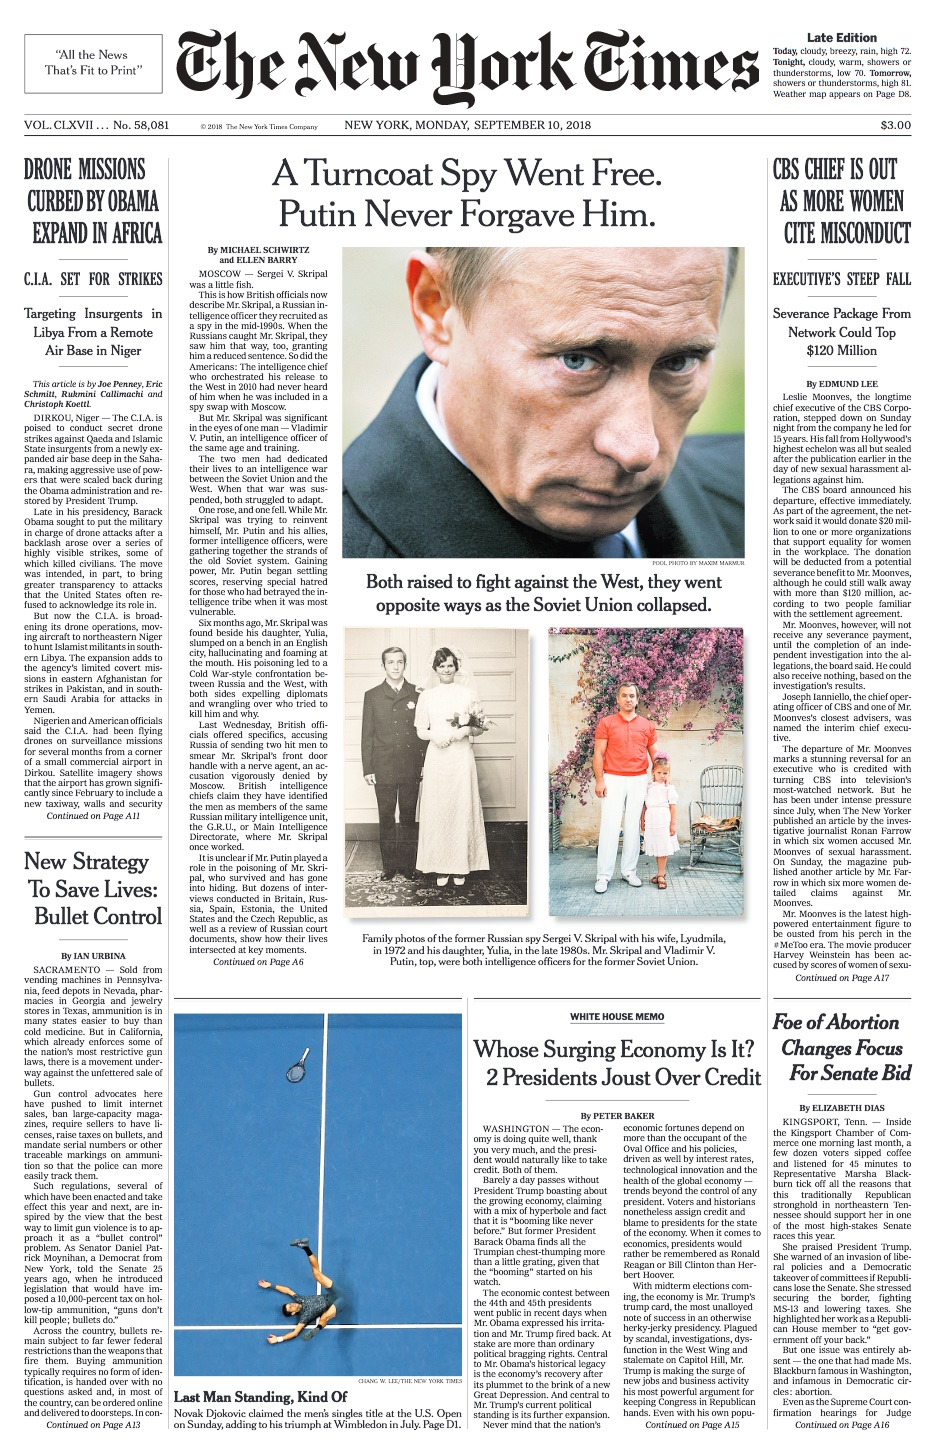 NYTimes_FrontPage_091018.jpg